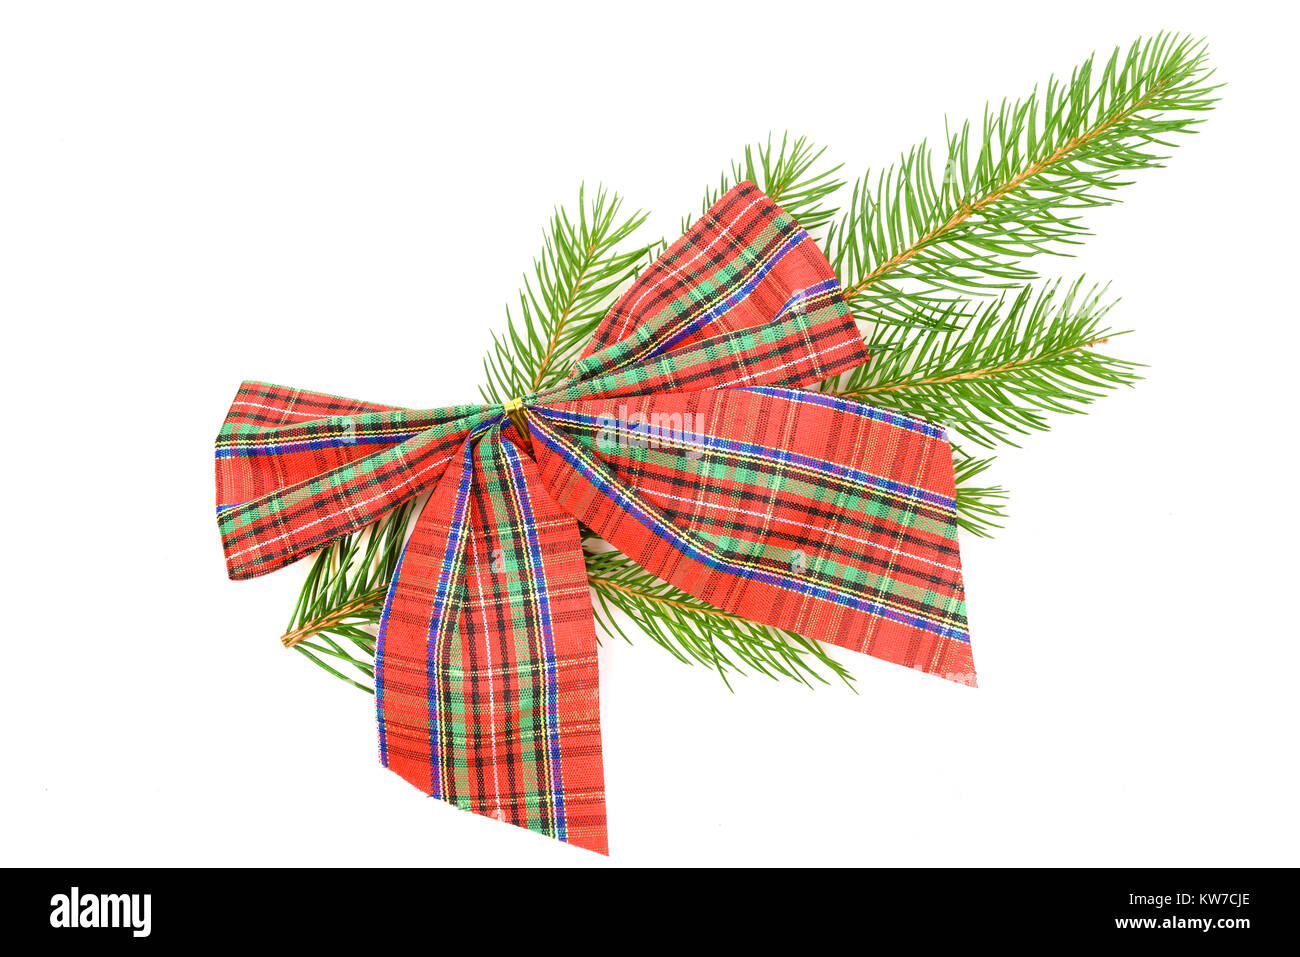 Christmas decorations concept - red checkered bow on a spruce twig on a white background in close-up - Stock Image